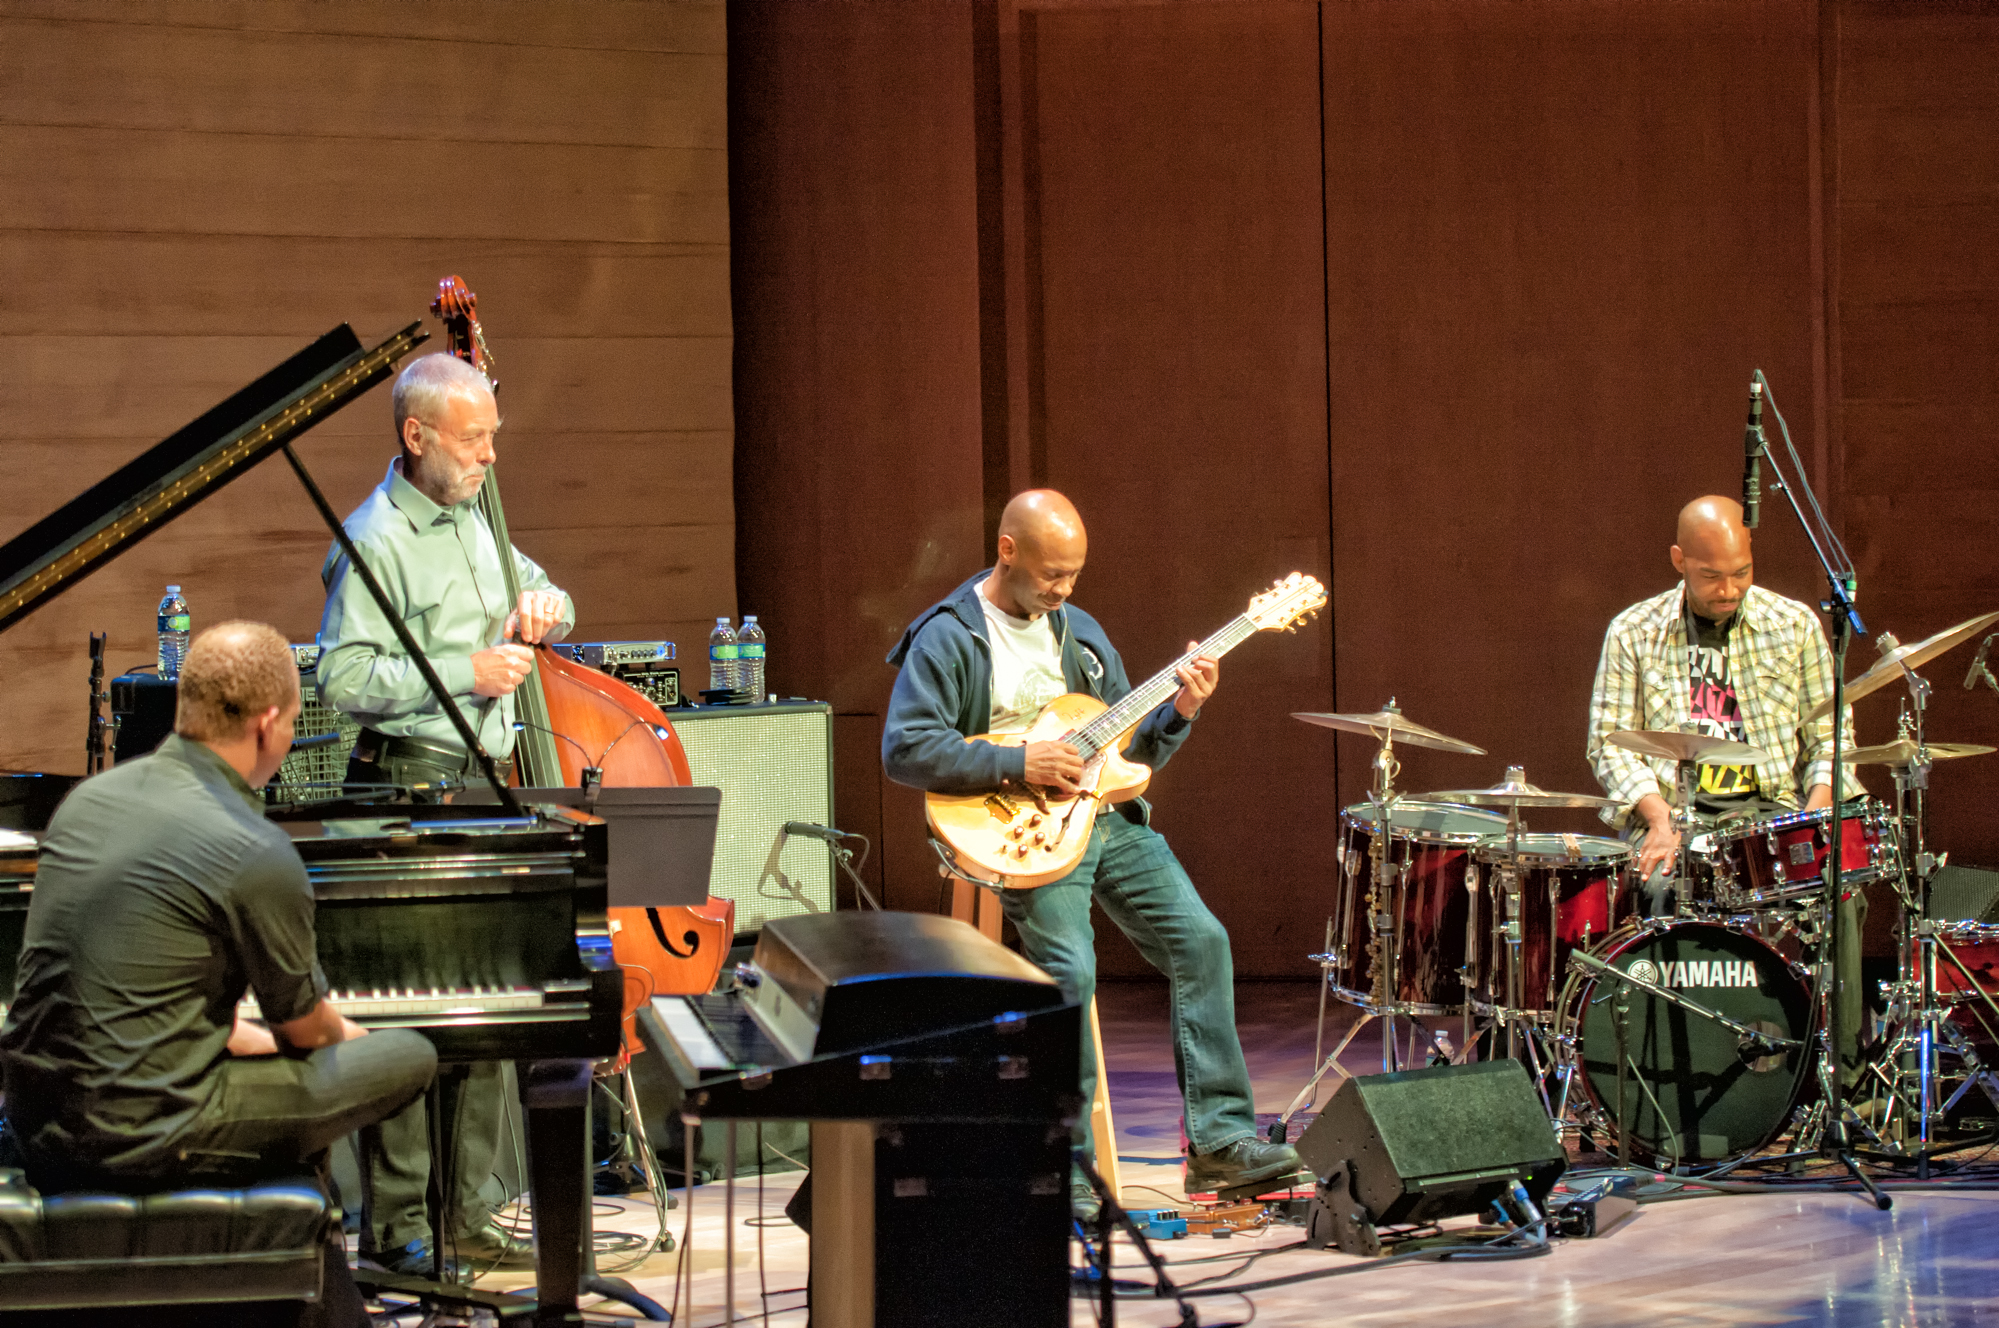 Craig Taborn, Dave Holland, Kevin Eubanks And Eric Harland With Prism At The Musical Instruments Museum (mim) In Phoenix